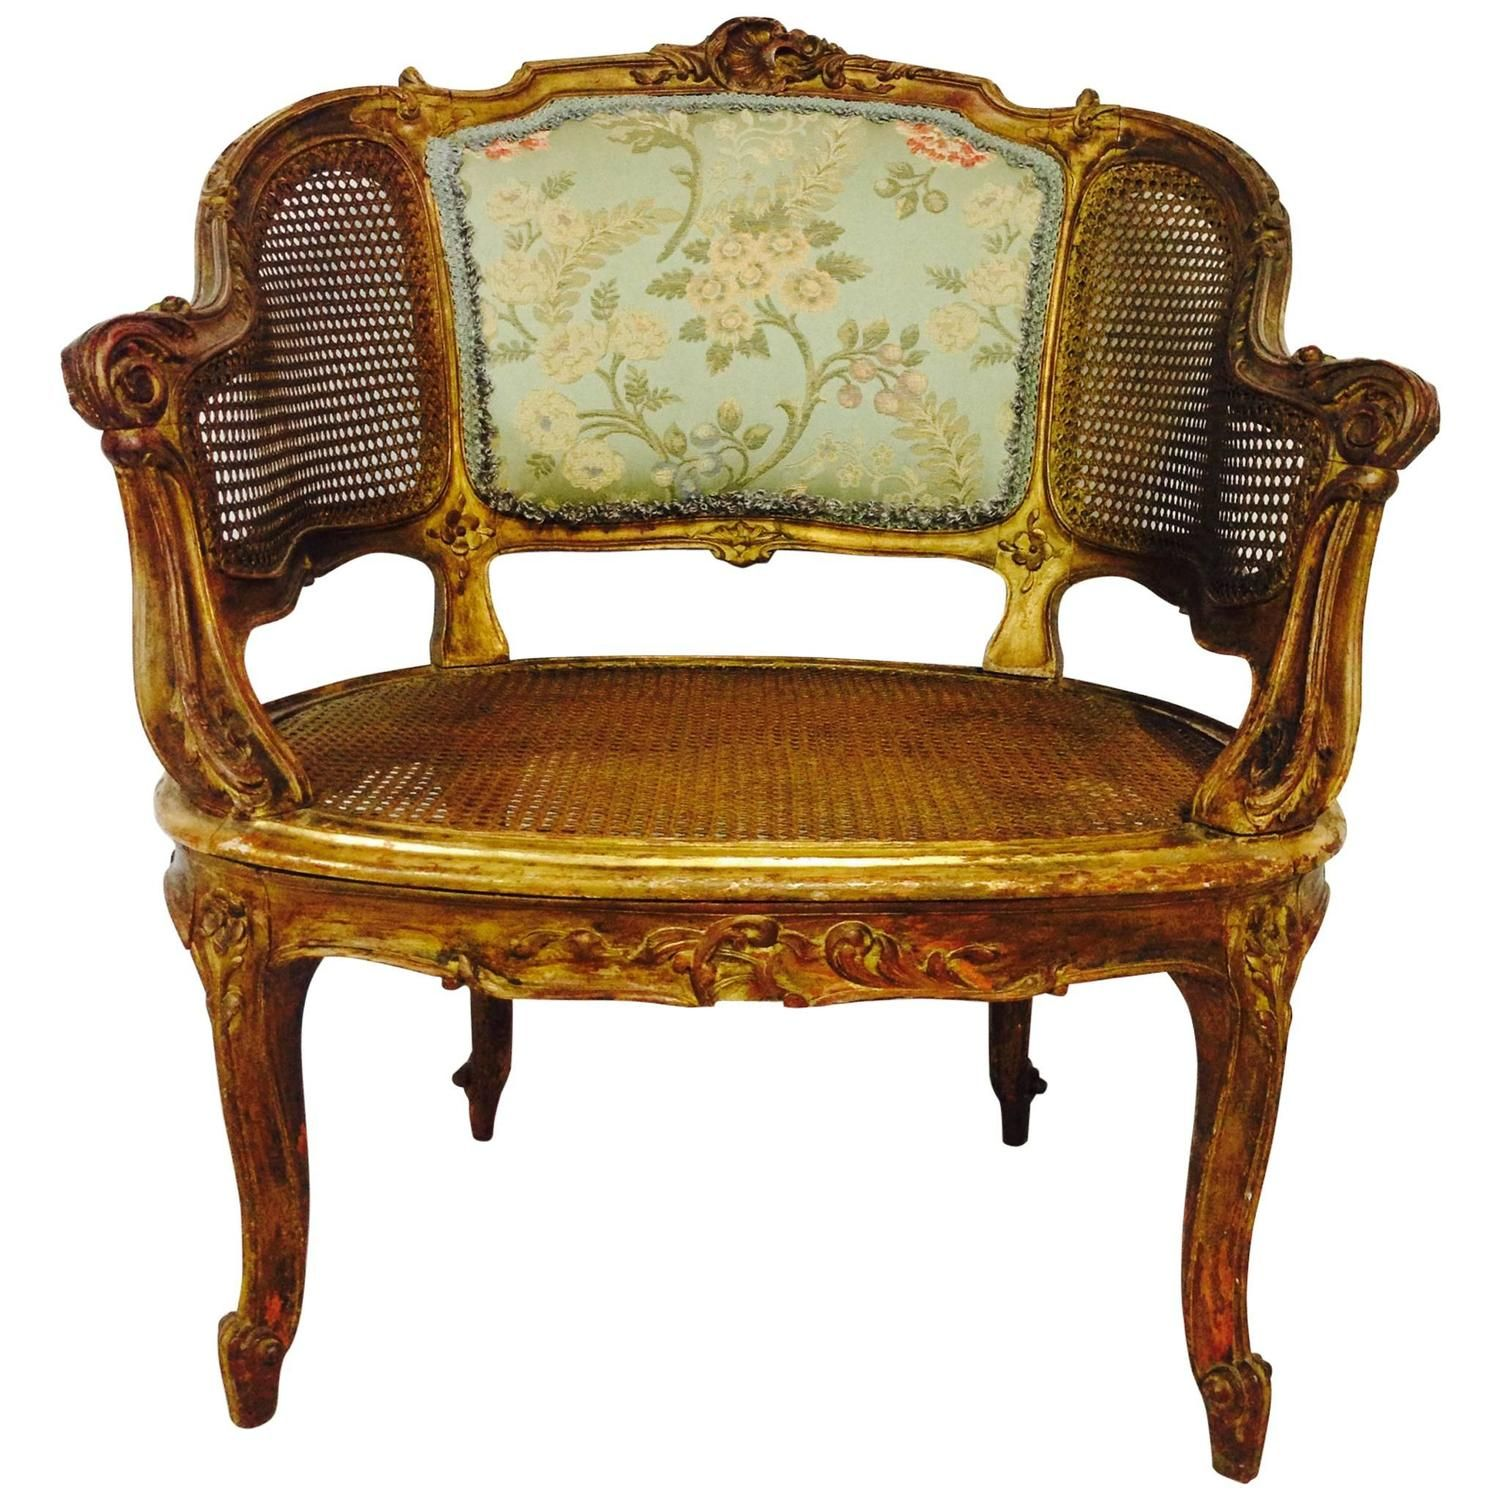 Antique Louis Xv Style French Giltwood Cane Back Chair From A